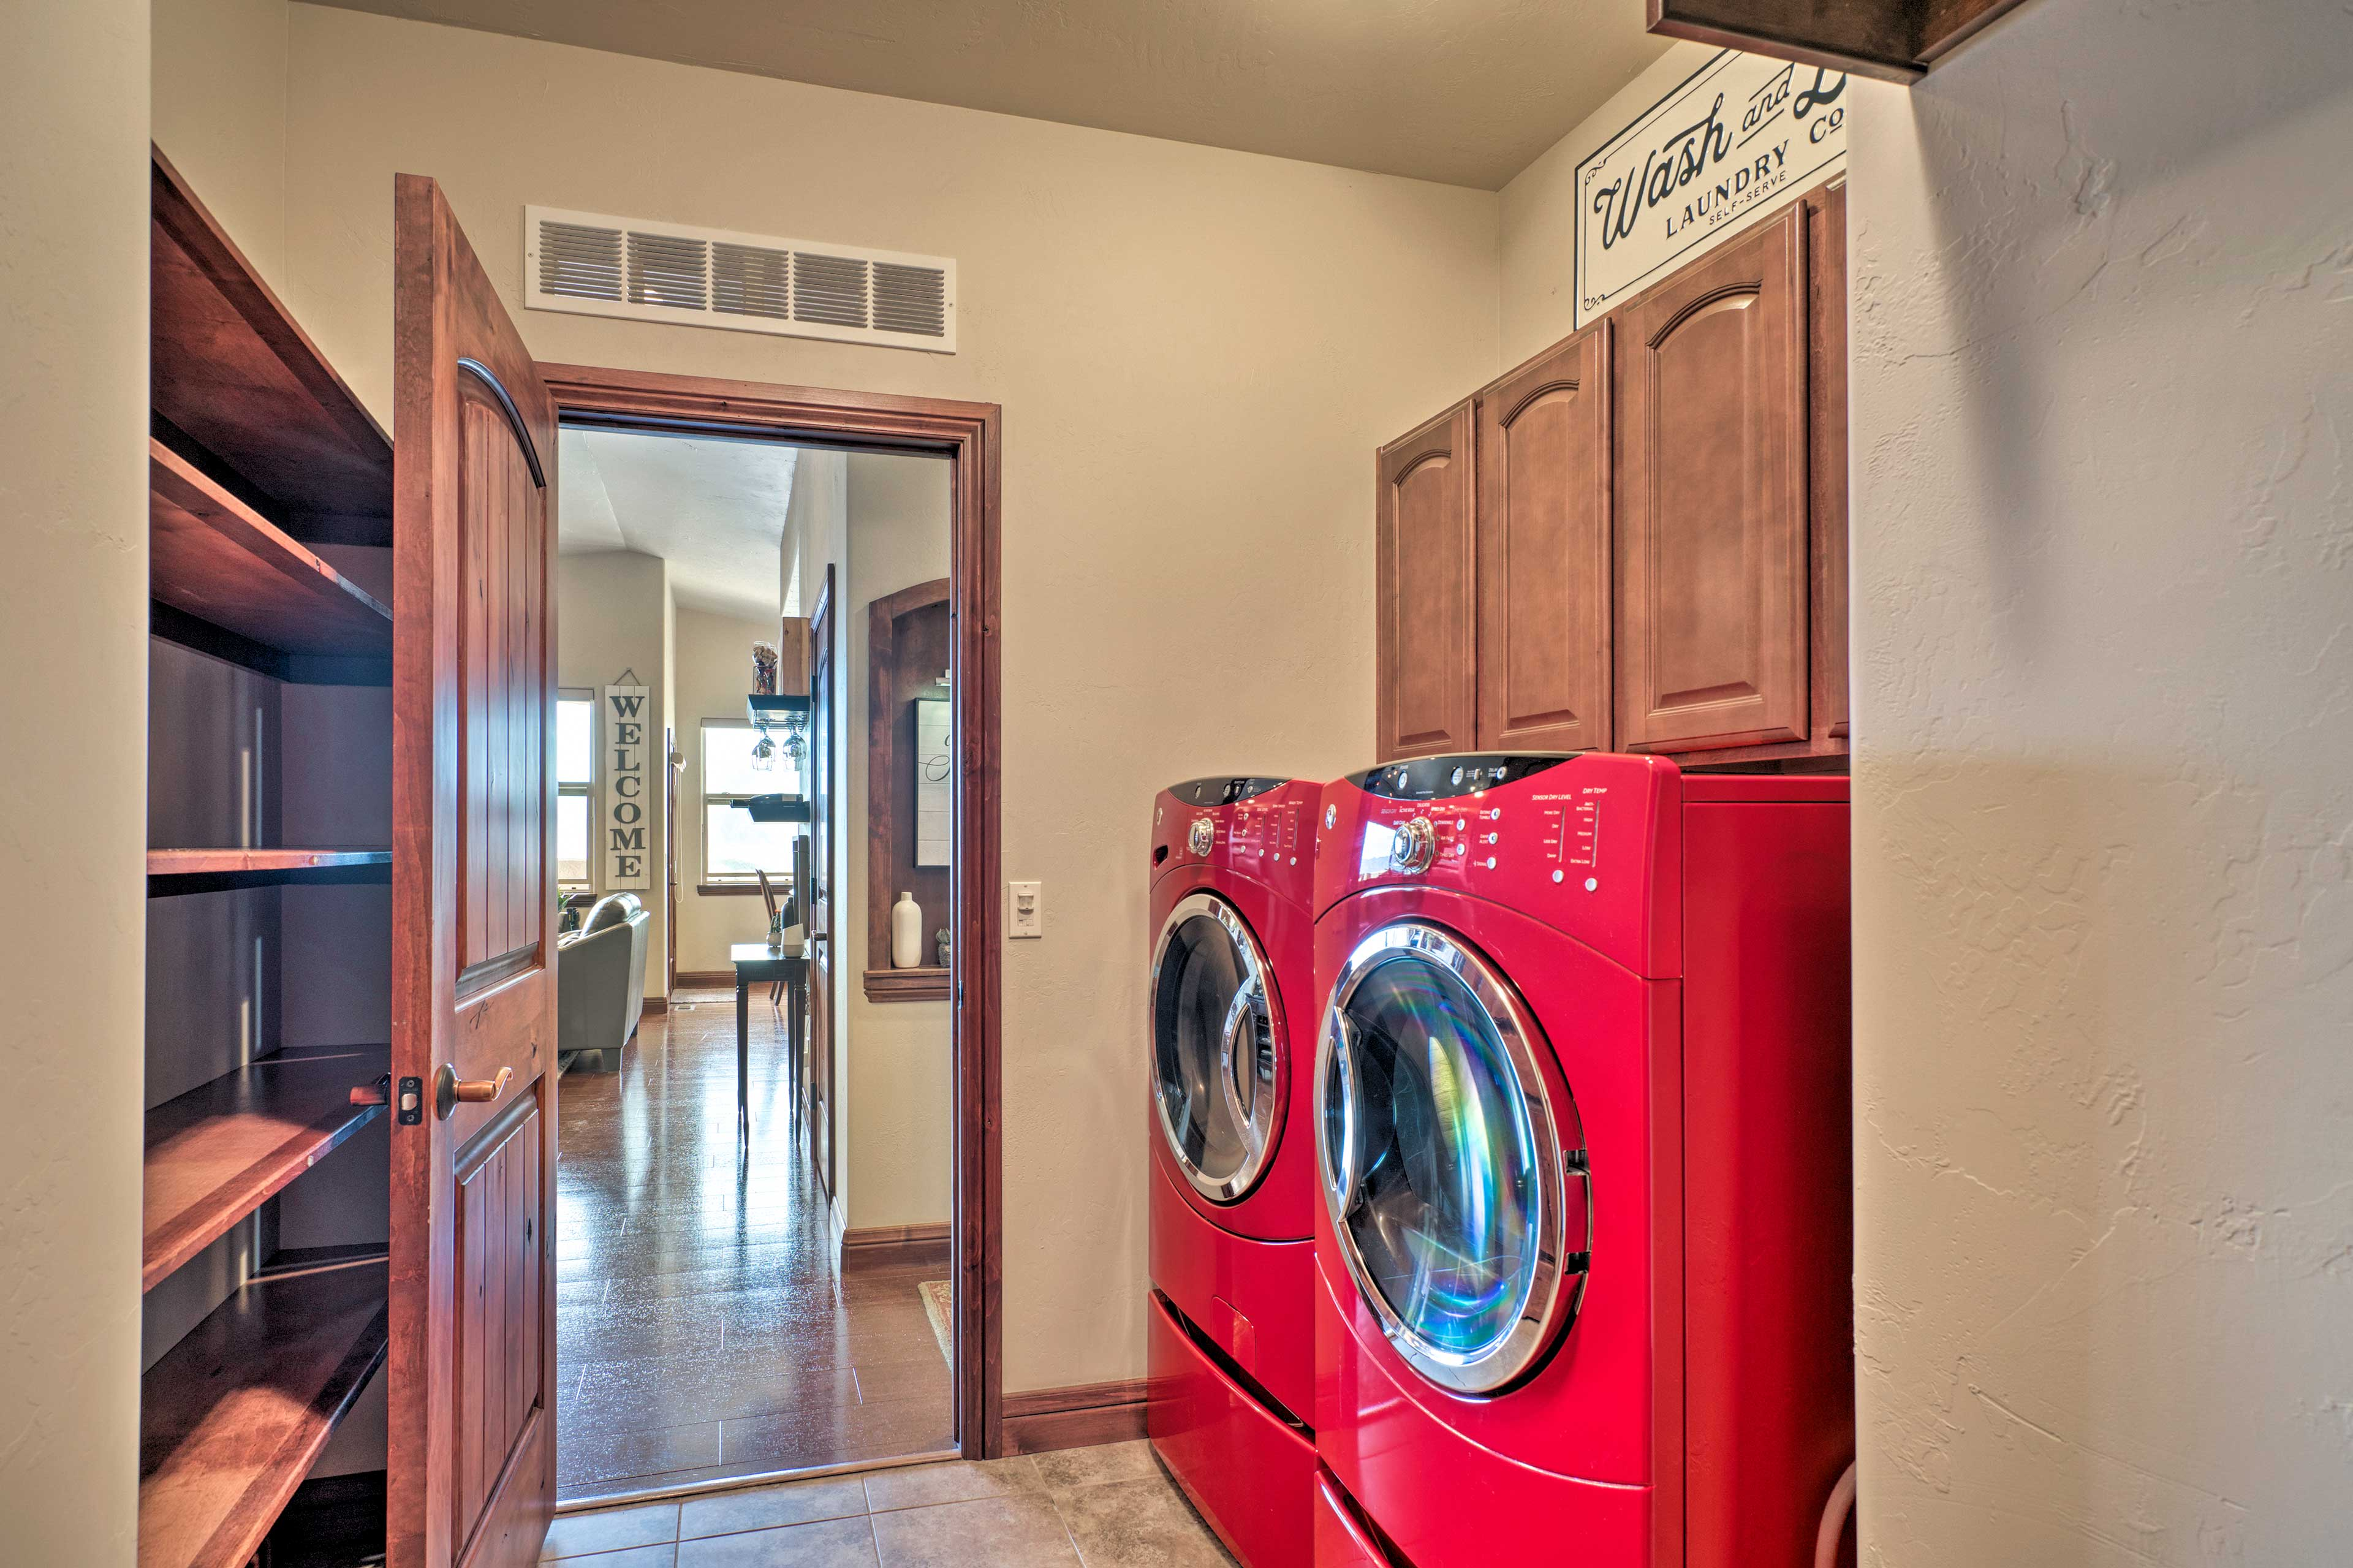 Toss your dirtied adventure clothes into the in-unit washer and dryer.